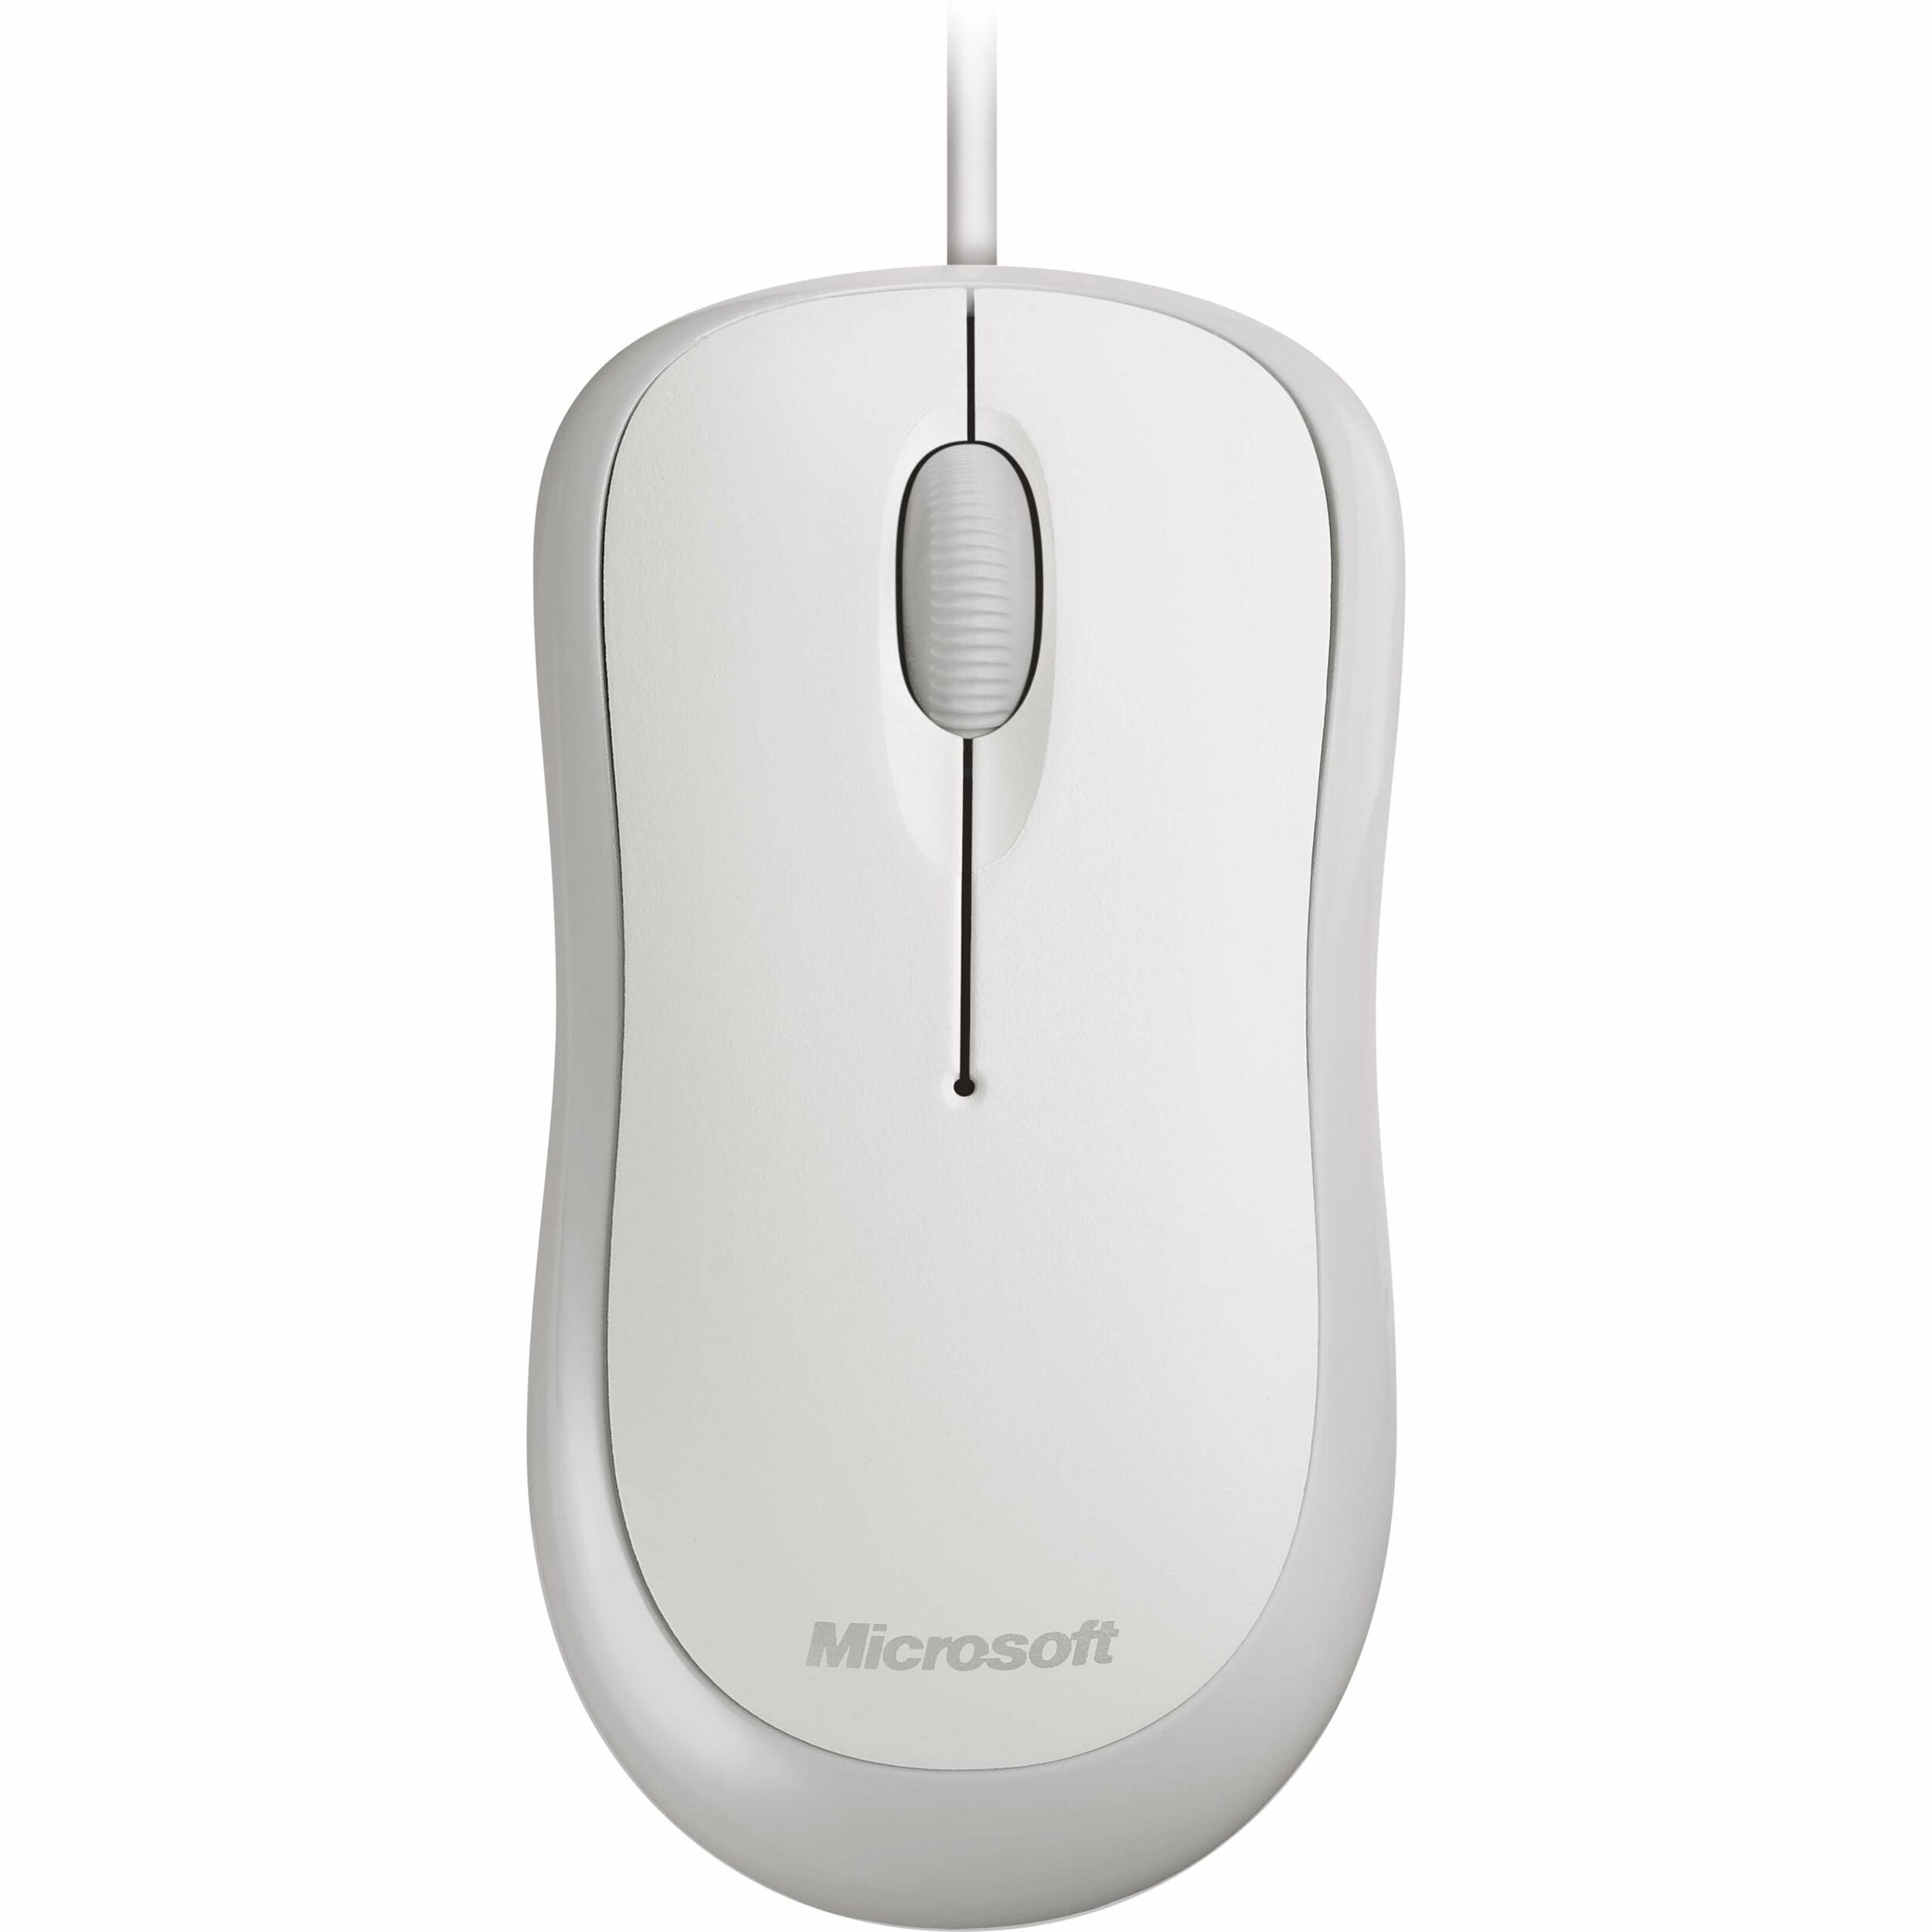 Microsoft 4YH-00008 Mouse - Optical - Cable - 3 Buttons - White